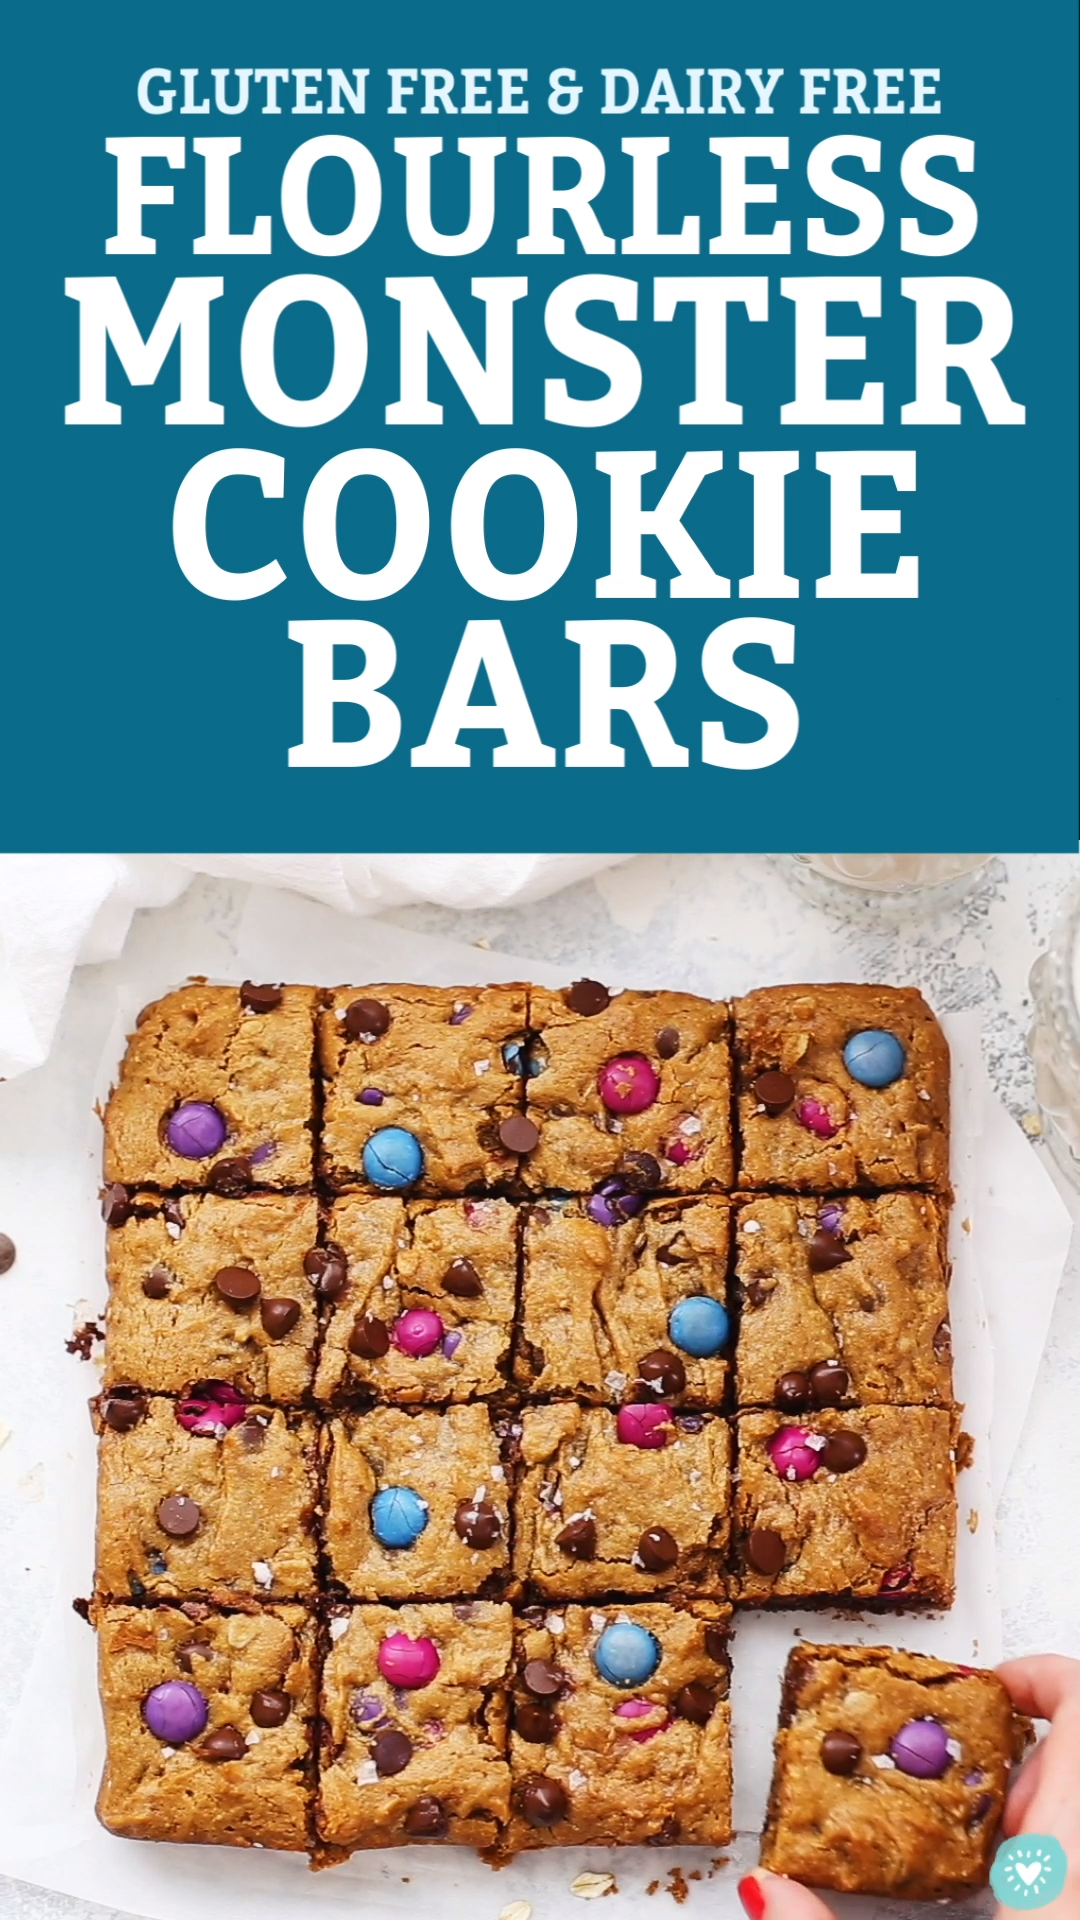 Flourless Monster Cookie Bars (Gluten Free, Dairy Free)